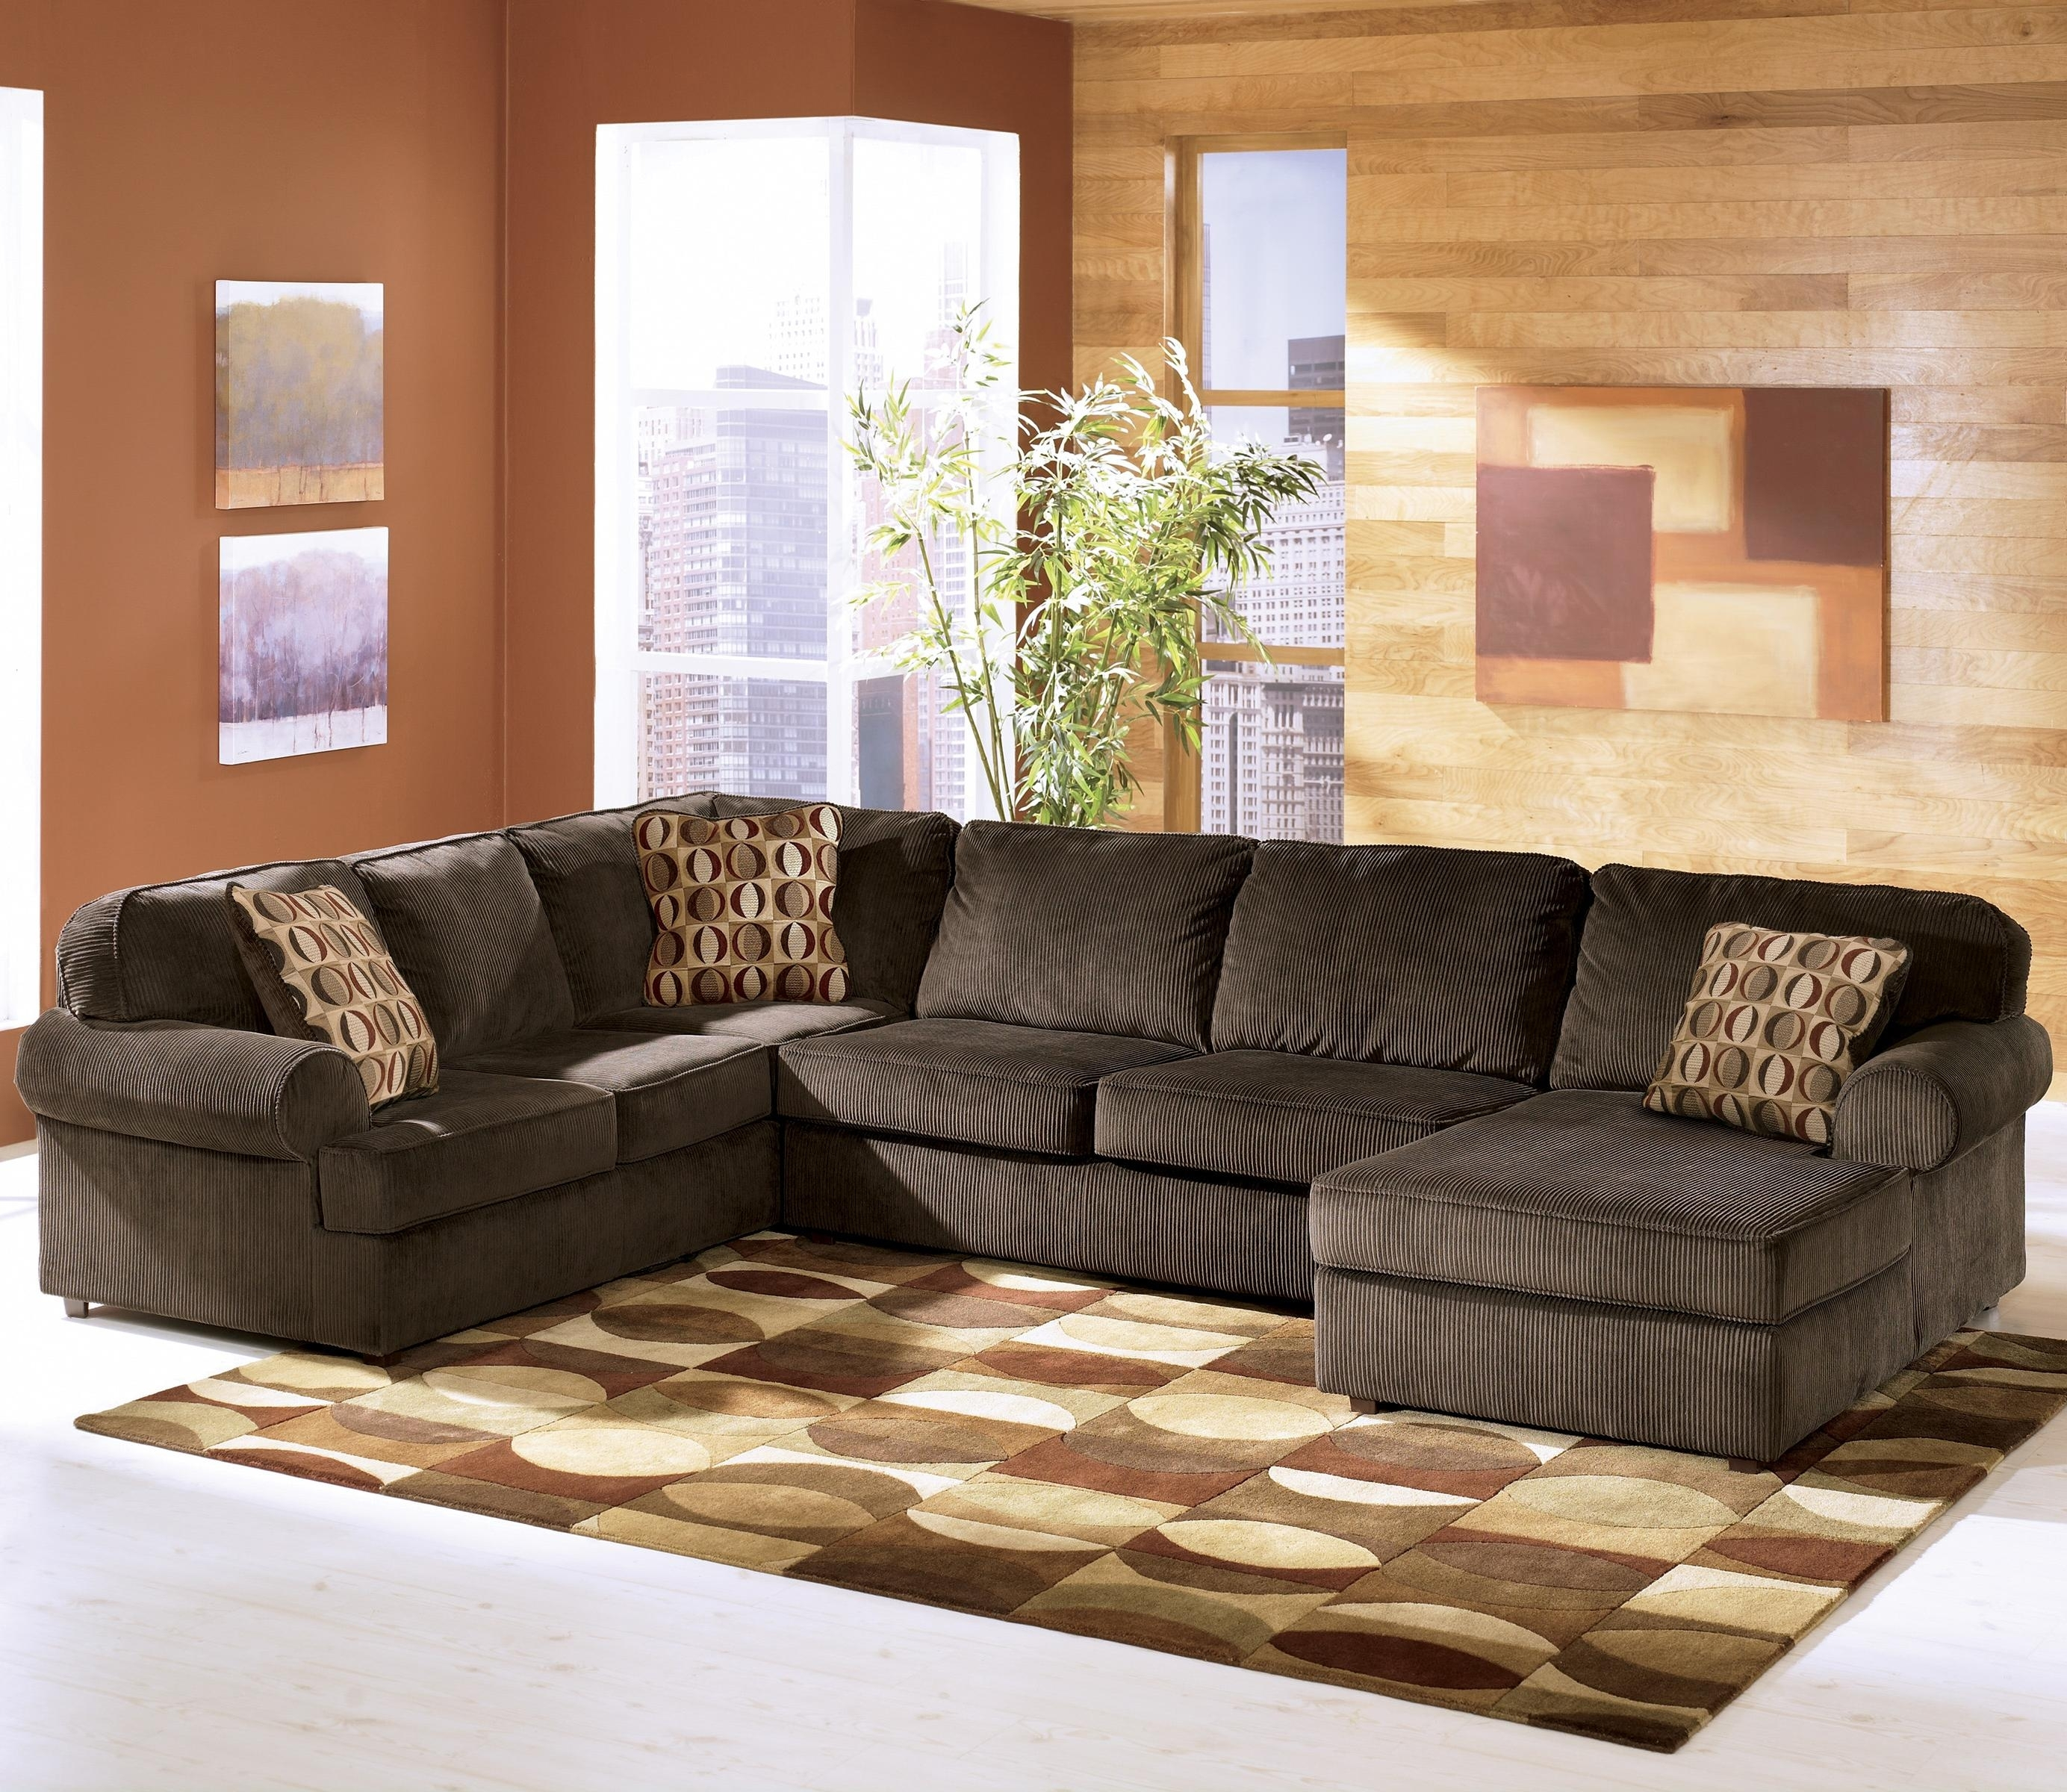 Ashley Furniture Vista – Chocolate Casual 3 Piece Sectional With With Regard To Lucy Dark Grey 2 Piece Sectionals With Laf Chaise (Image 6 of 25)